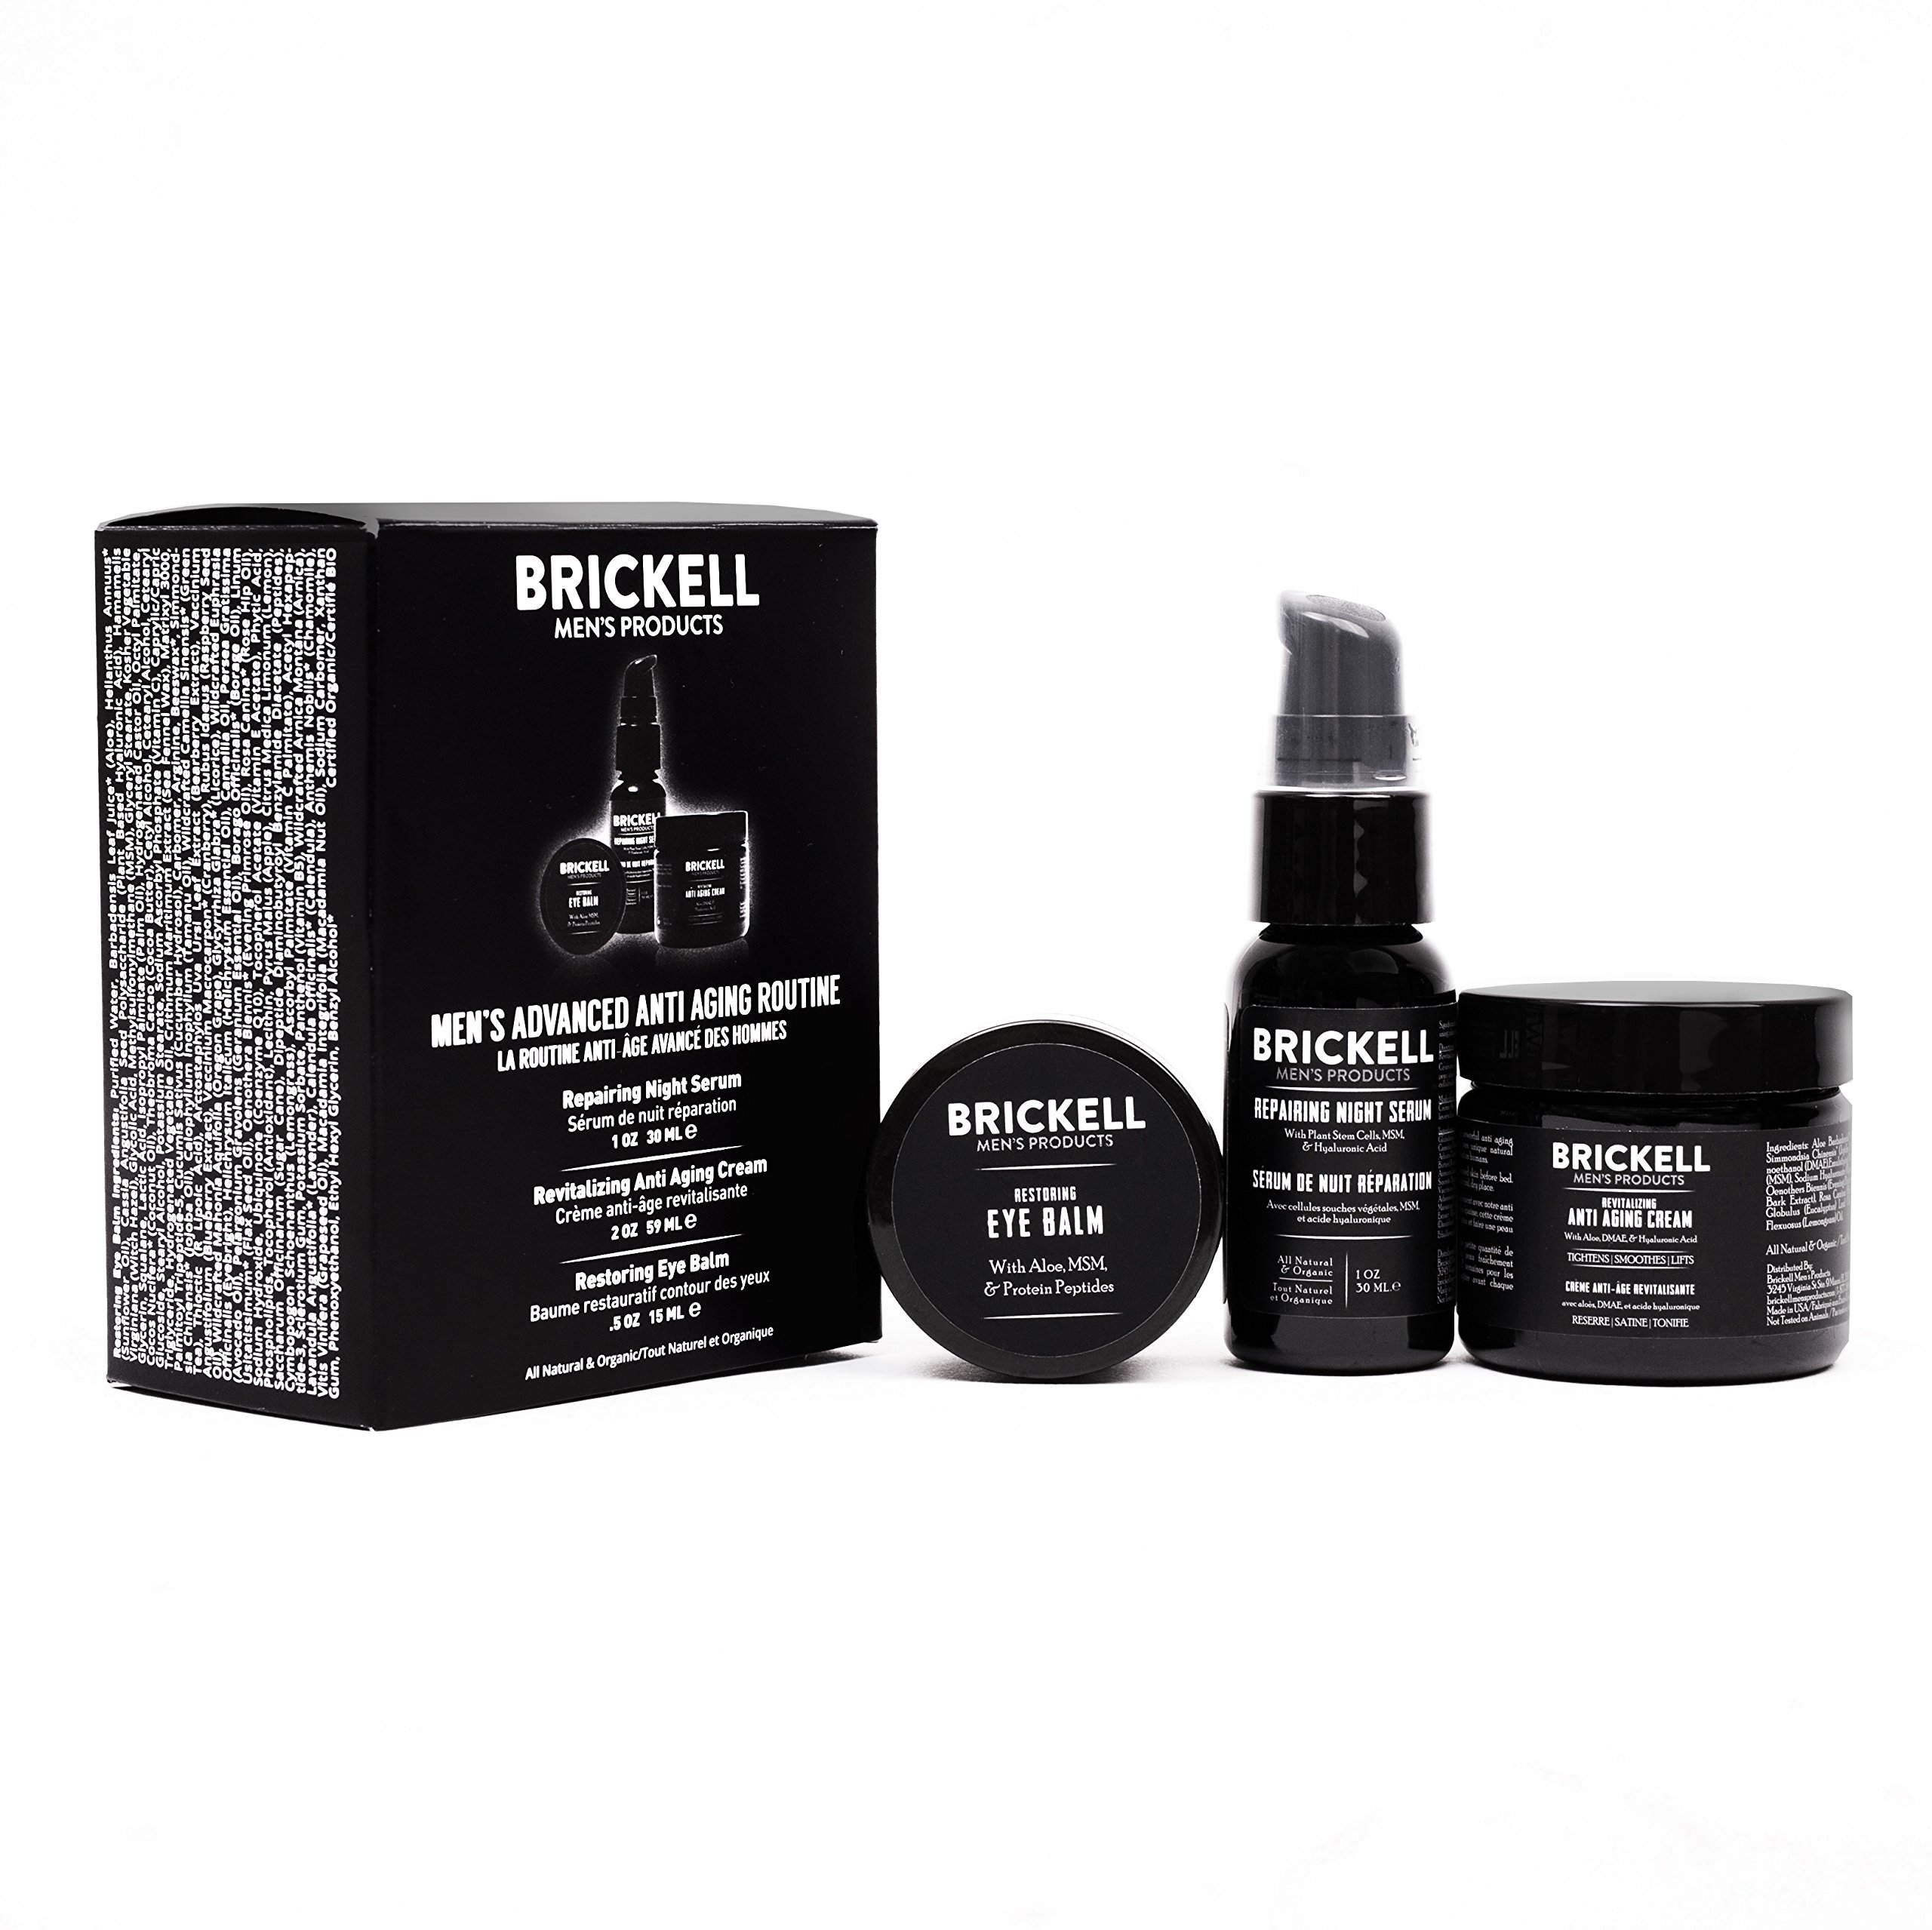 Brickell Men's Advanced Anti-Aging Routine - Night Face Cream, Vitamin C Facial Serum and Eye Cream - Natural & Organic